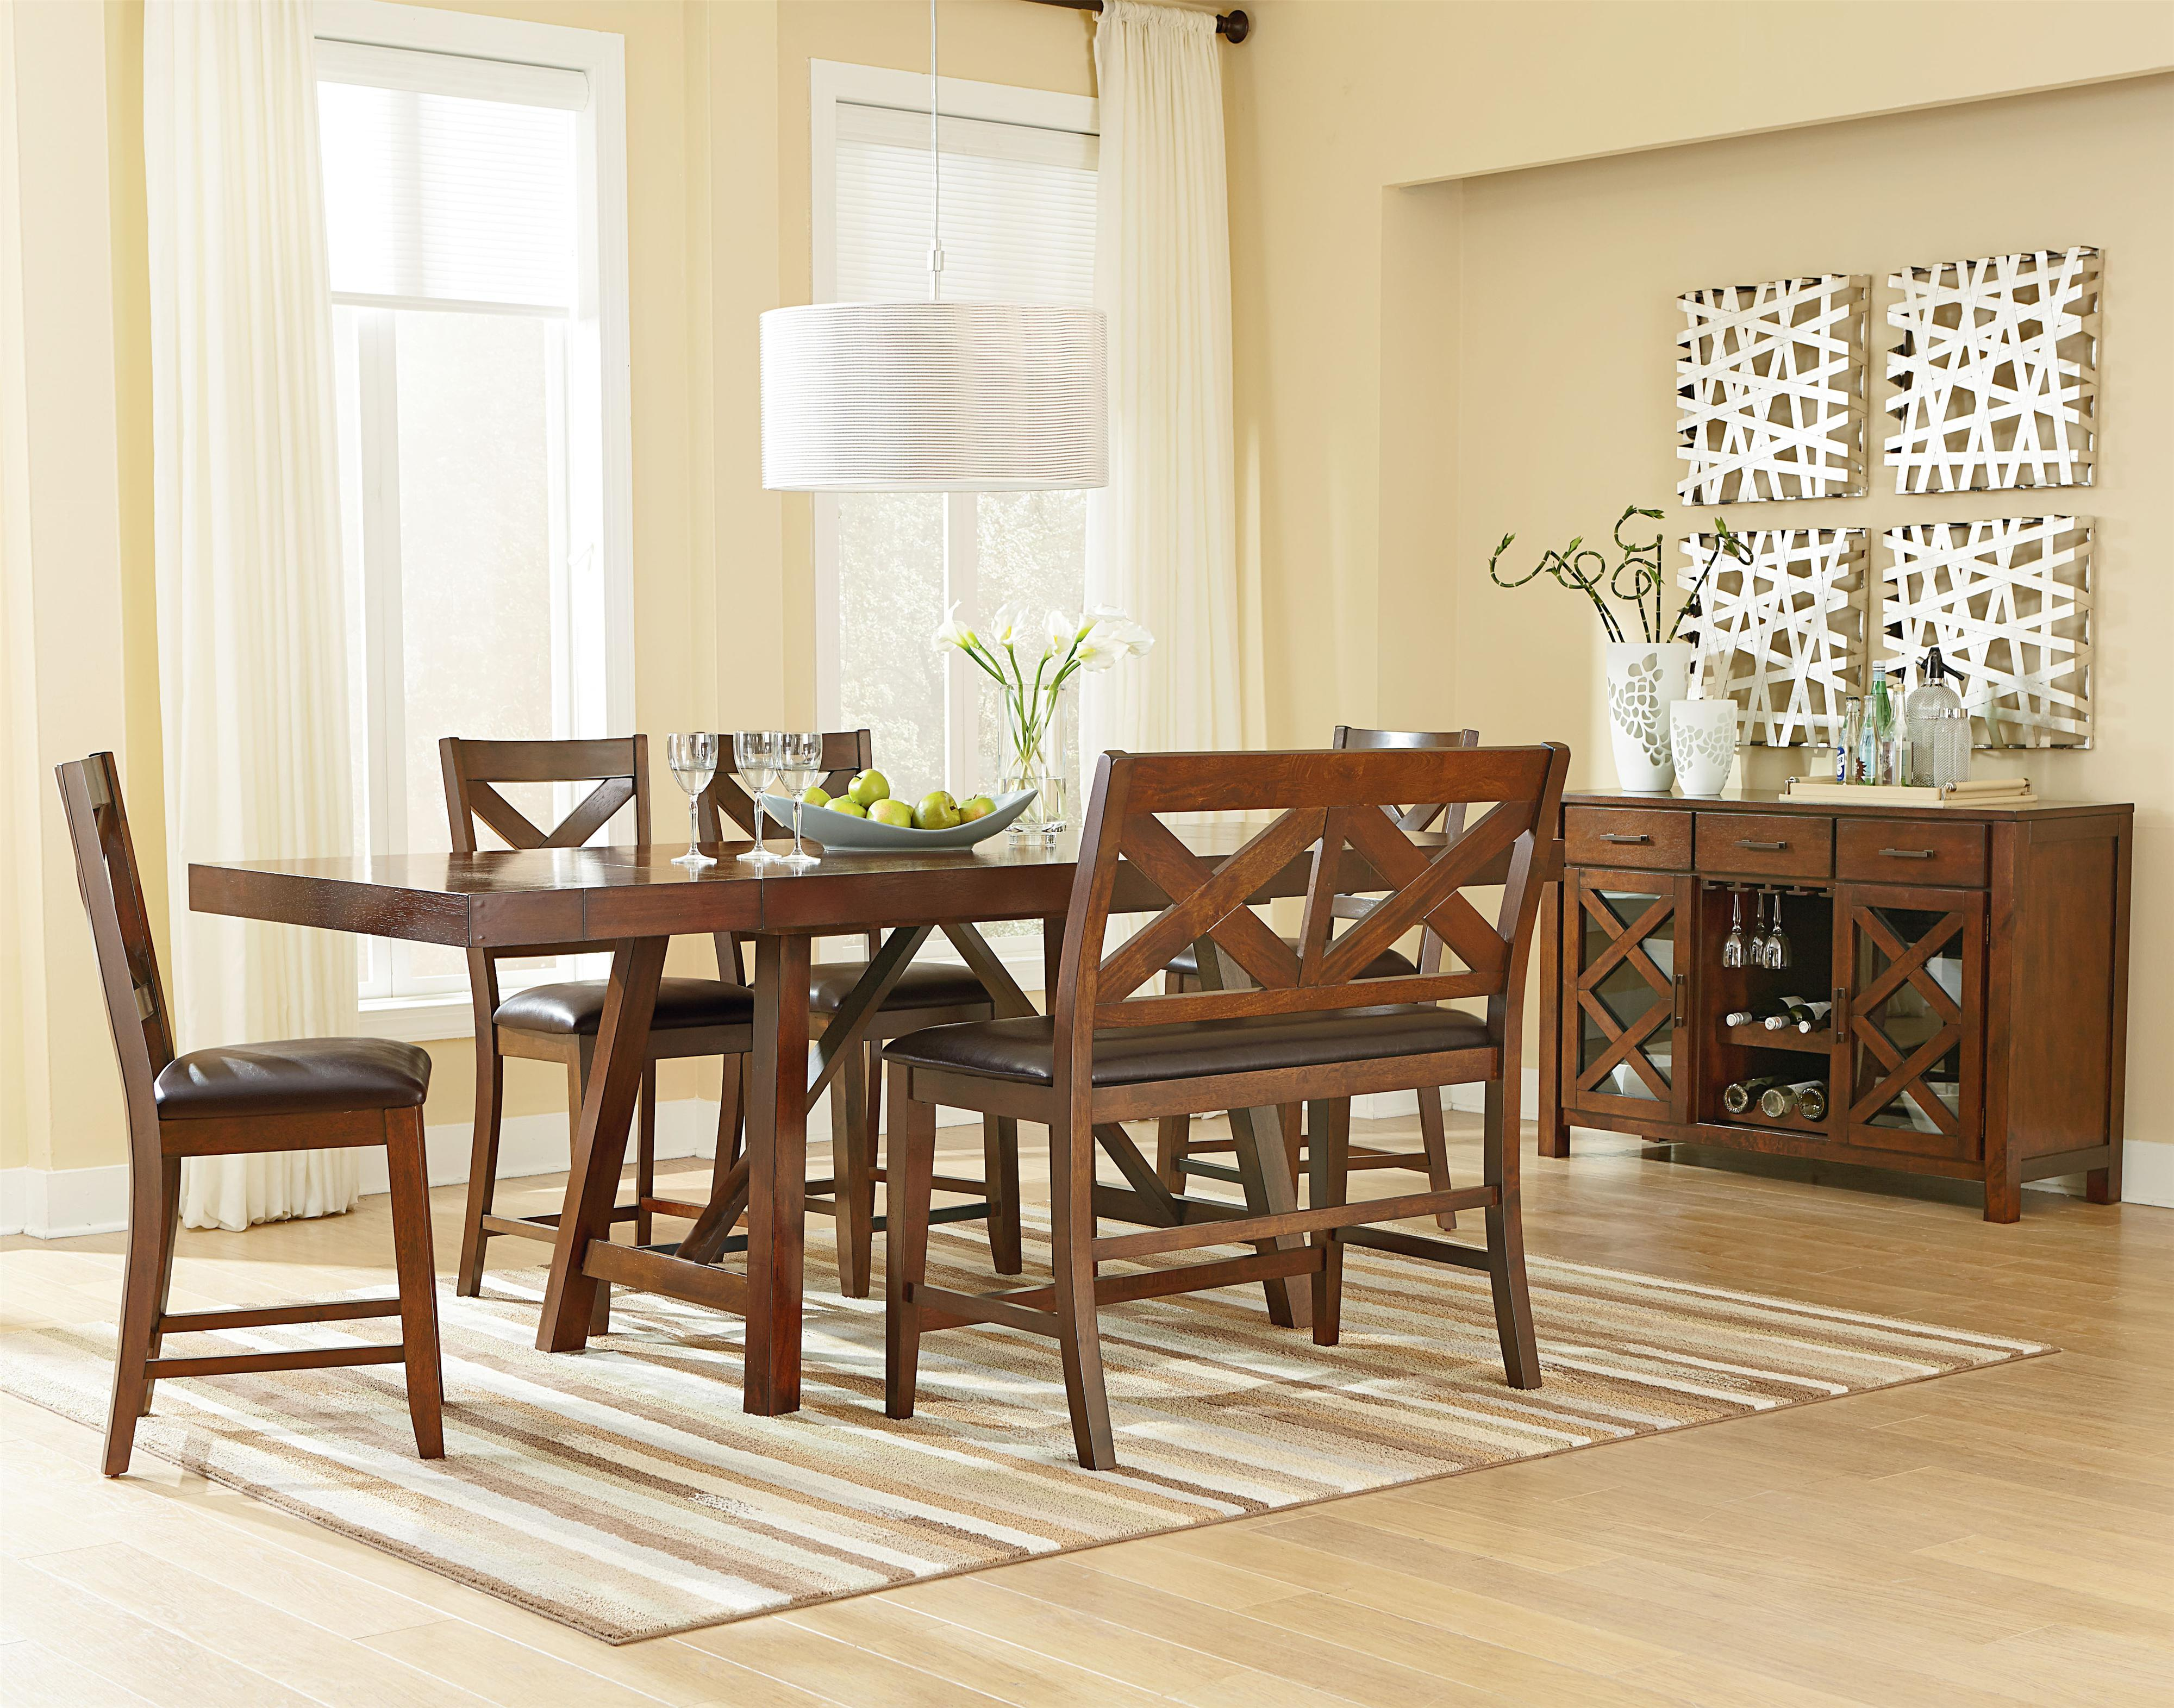 Standard Furniture Omaha Brown Casual Dining Room Group - Item Number: 16180 Dining Room Group 1